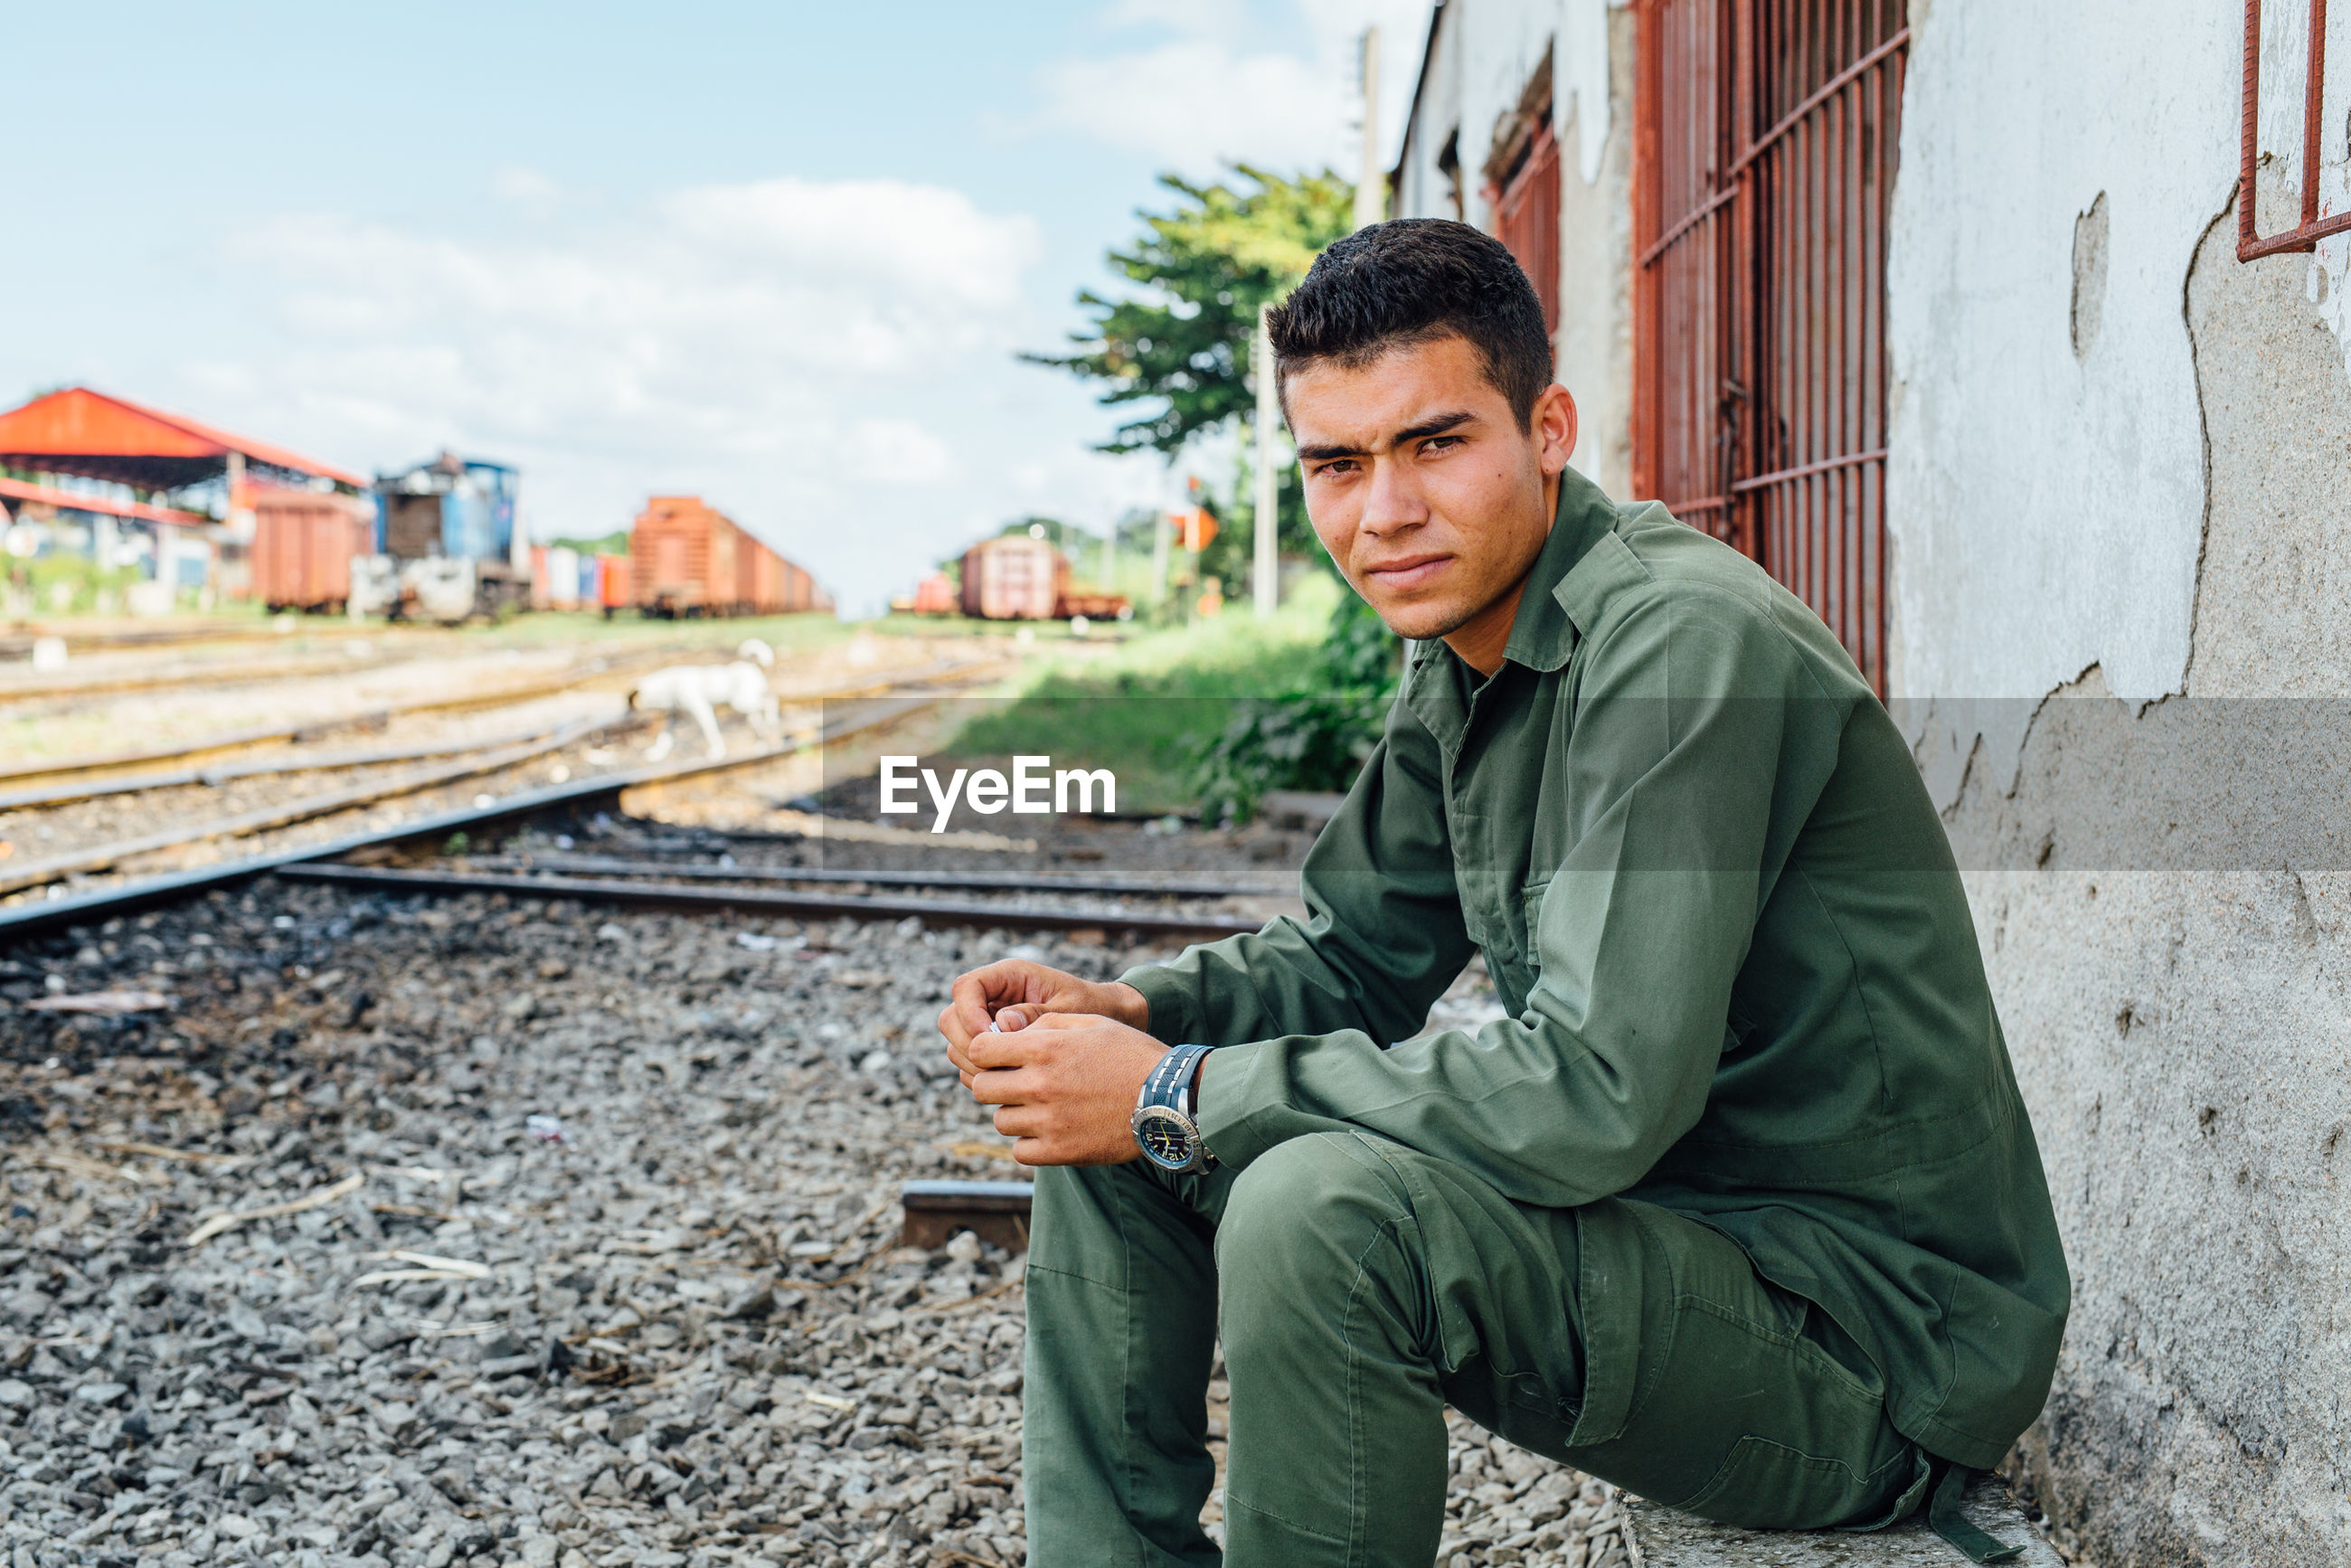 men, railroad track, only men, one man only, sitting, smart phone, one person, portable information device, business finance and industry, portrait, adult, human hand, outdoors, technology, human body part, people, day